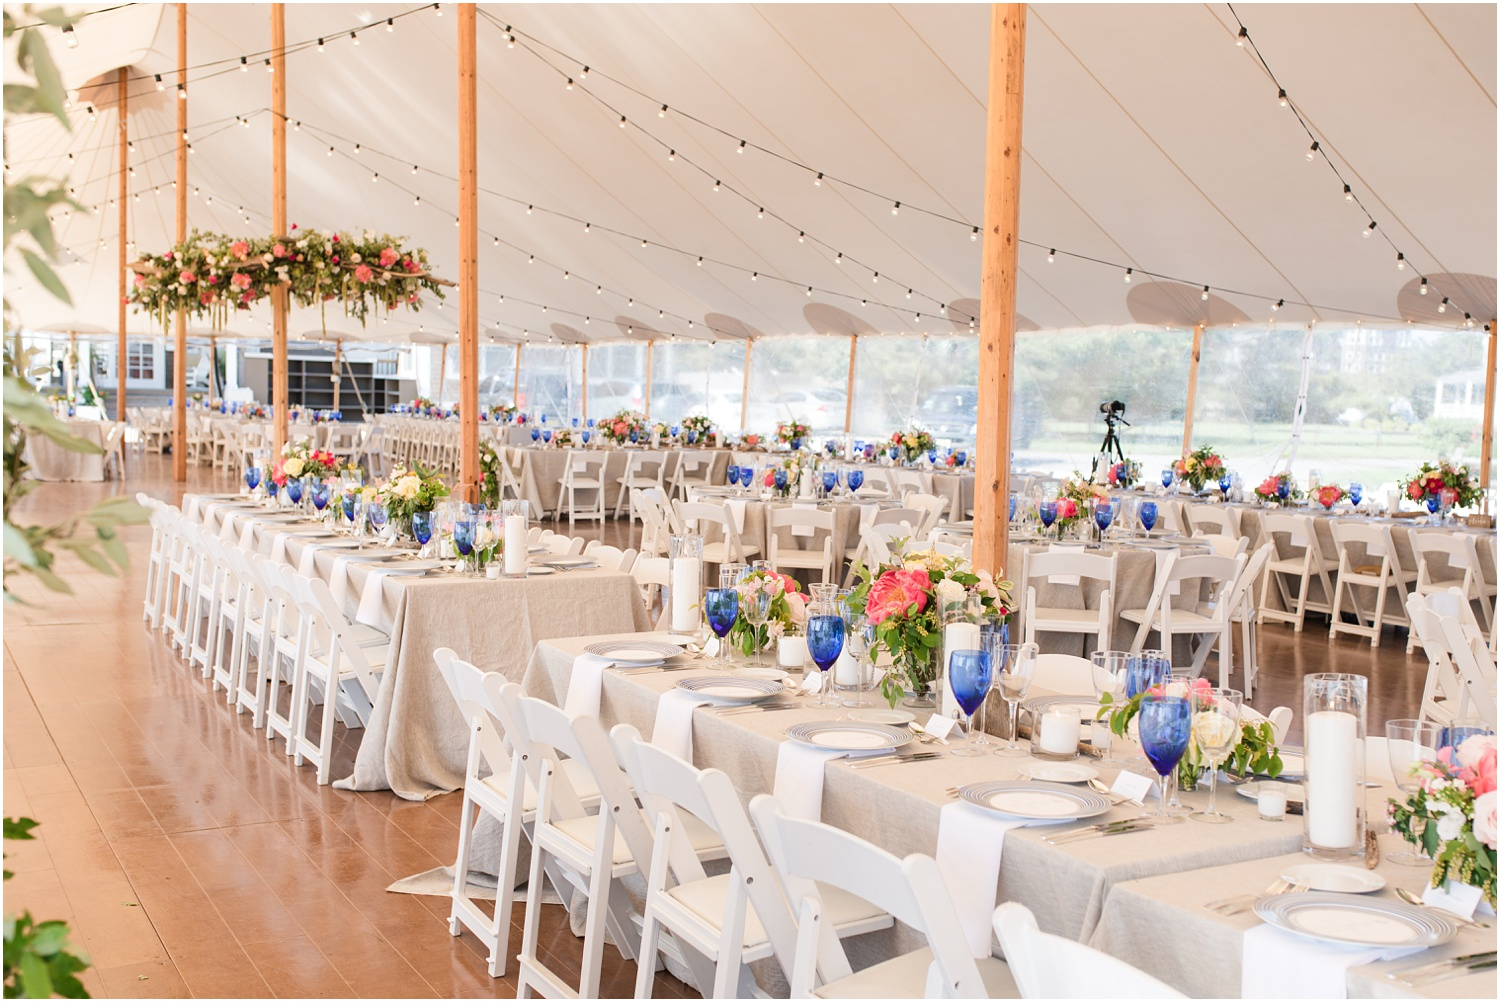 Photo of tent set up by Faye and Renee at Mantoloking Yacht Club.